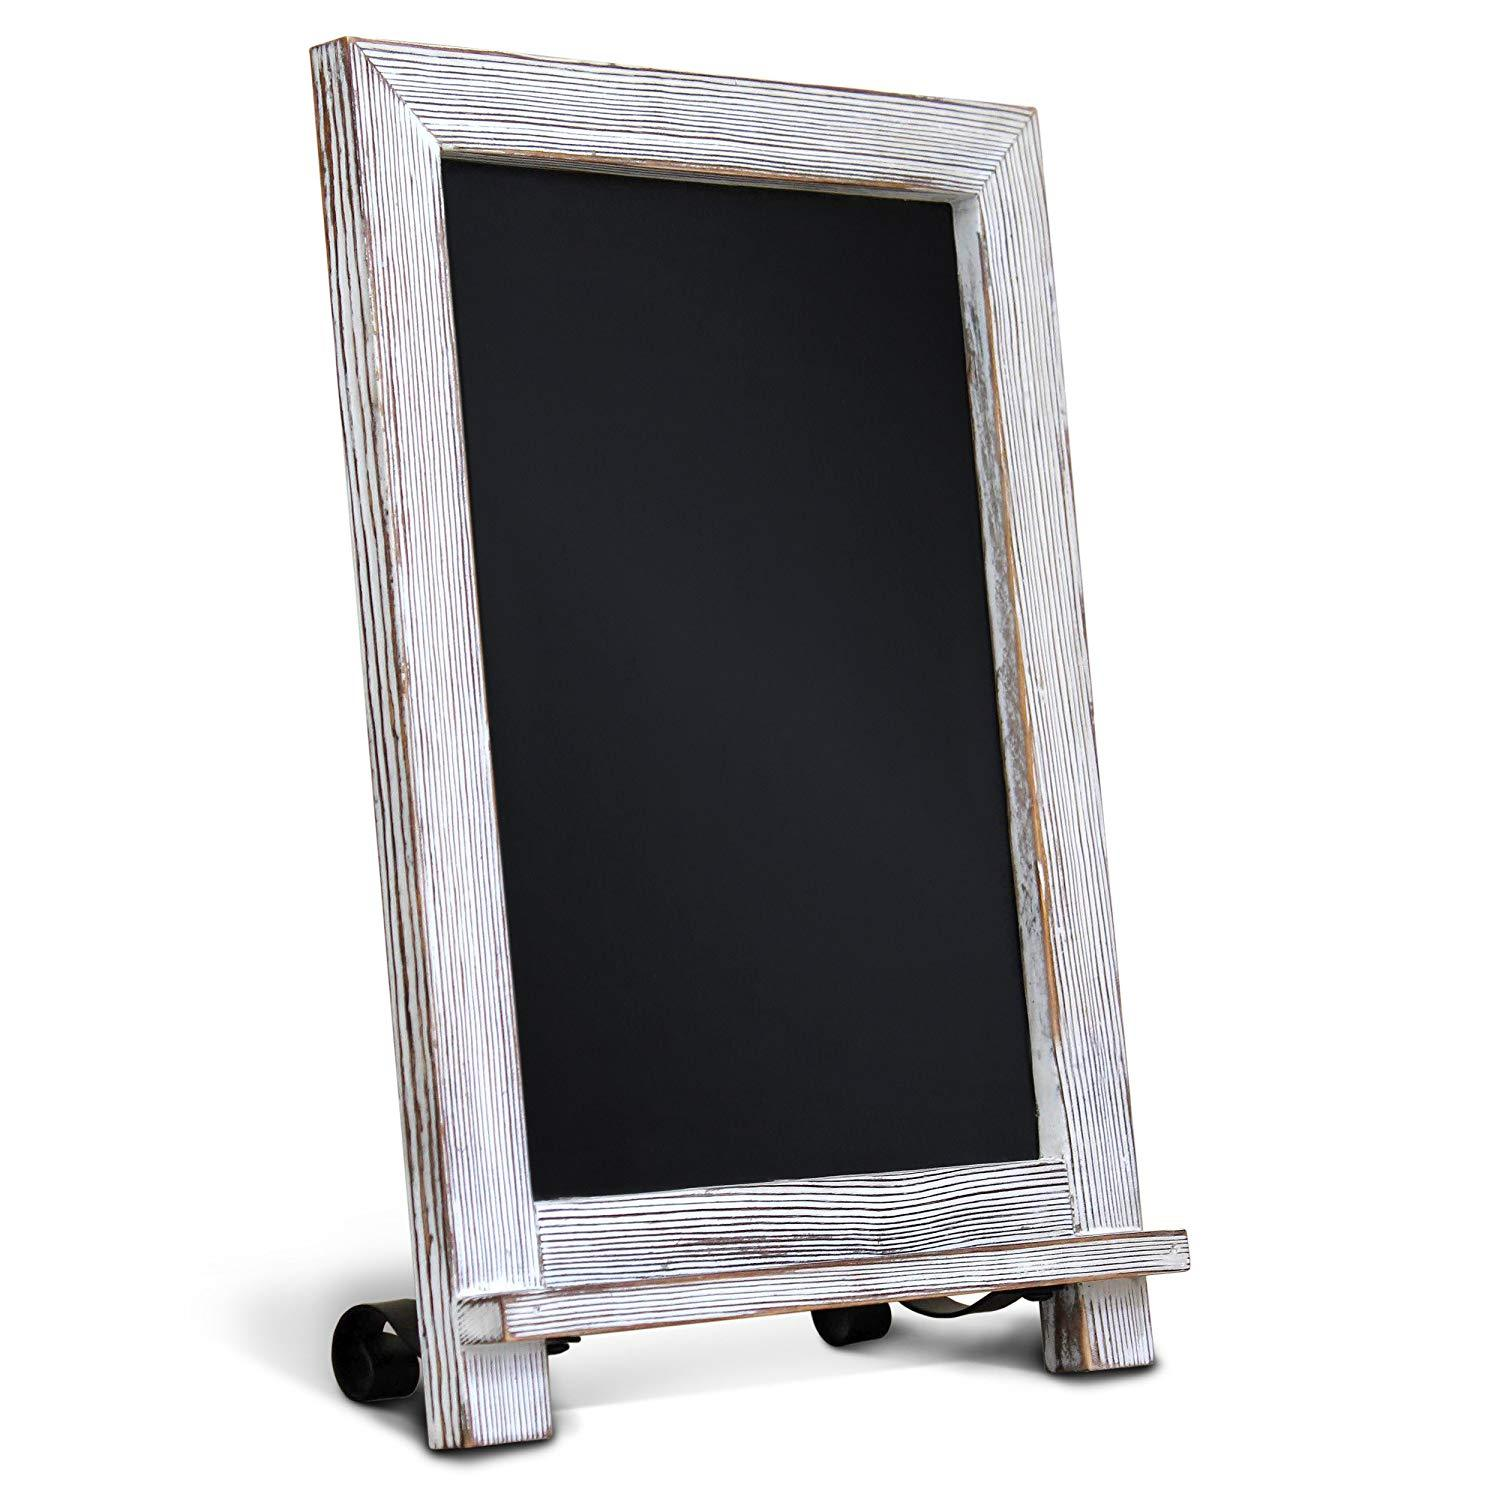 Superbe Rustic Whitewash Tabletop Chalkboard Sign / Hanging Magnetic Wall  Chalkboard / Small Countertop Chalkboard Easel / Kitchen Countertop Memo  Board / ...